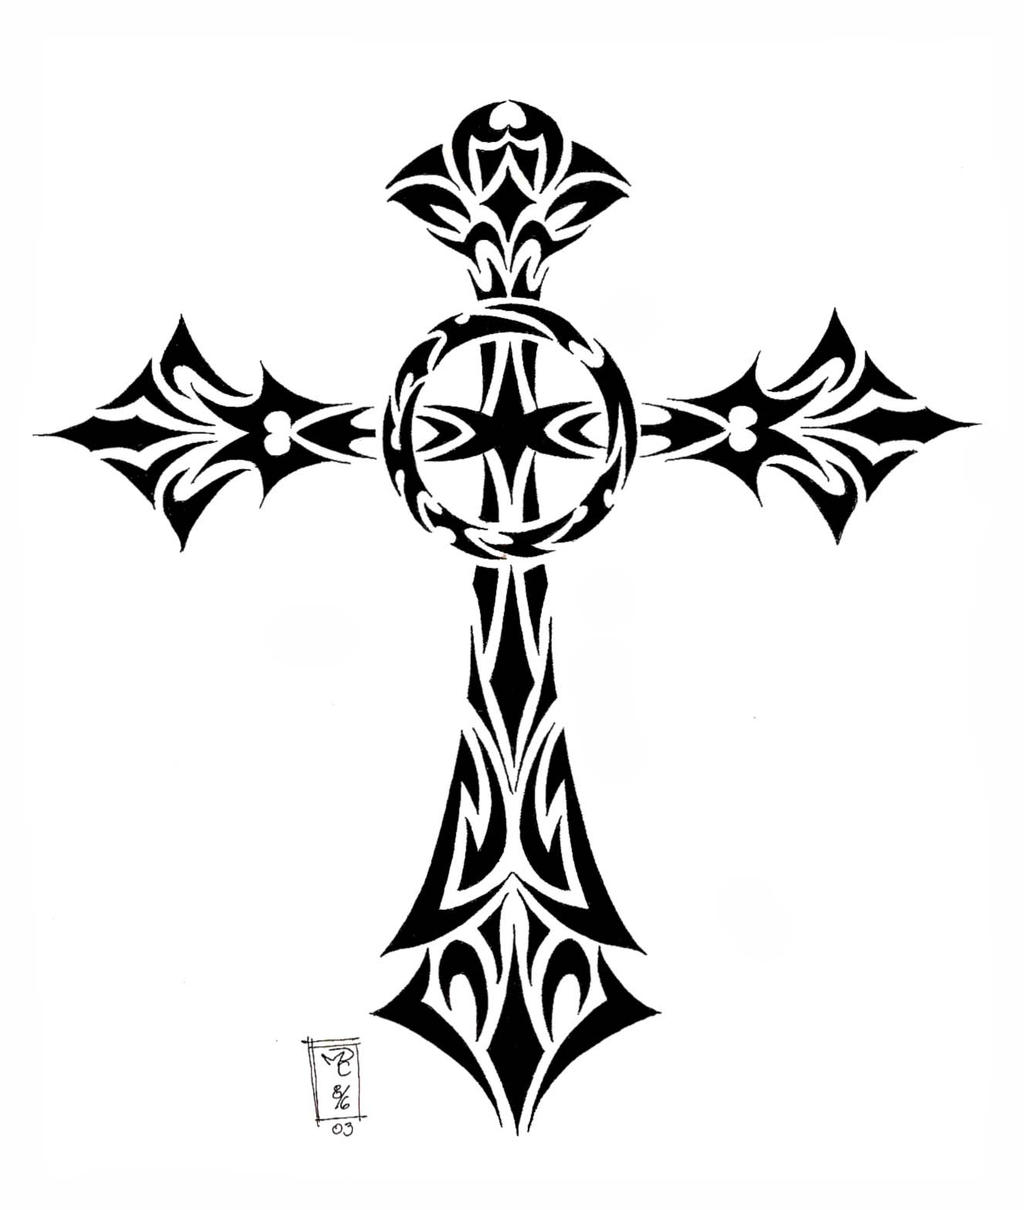 Pictures Of Tribal Cross Tattoos: Tribal Cross By MoRobles On DeviantArt